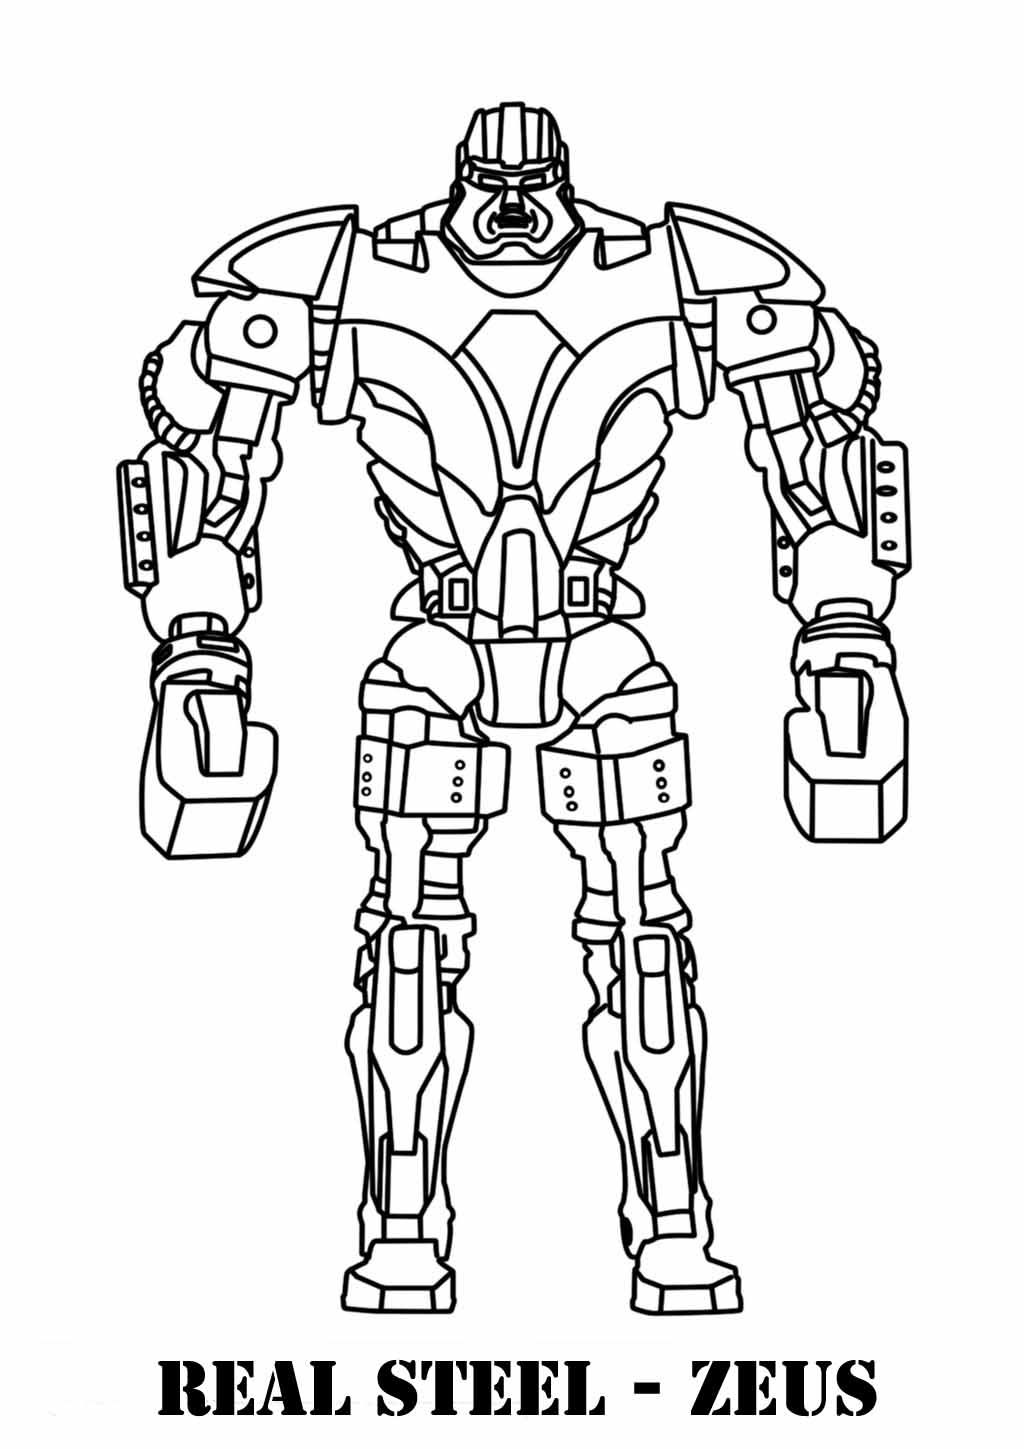 coloring robot witty title coming soon october 2011 coloring robot